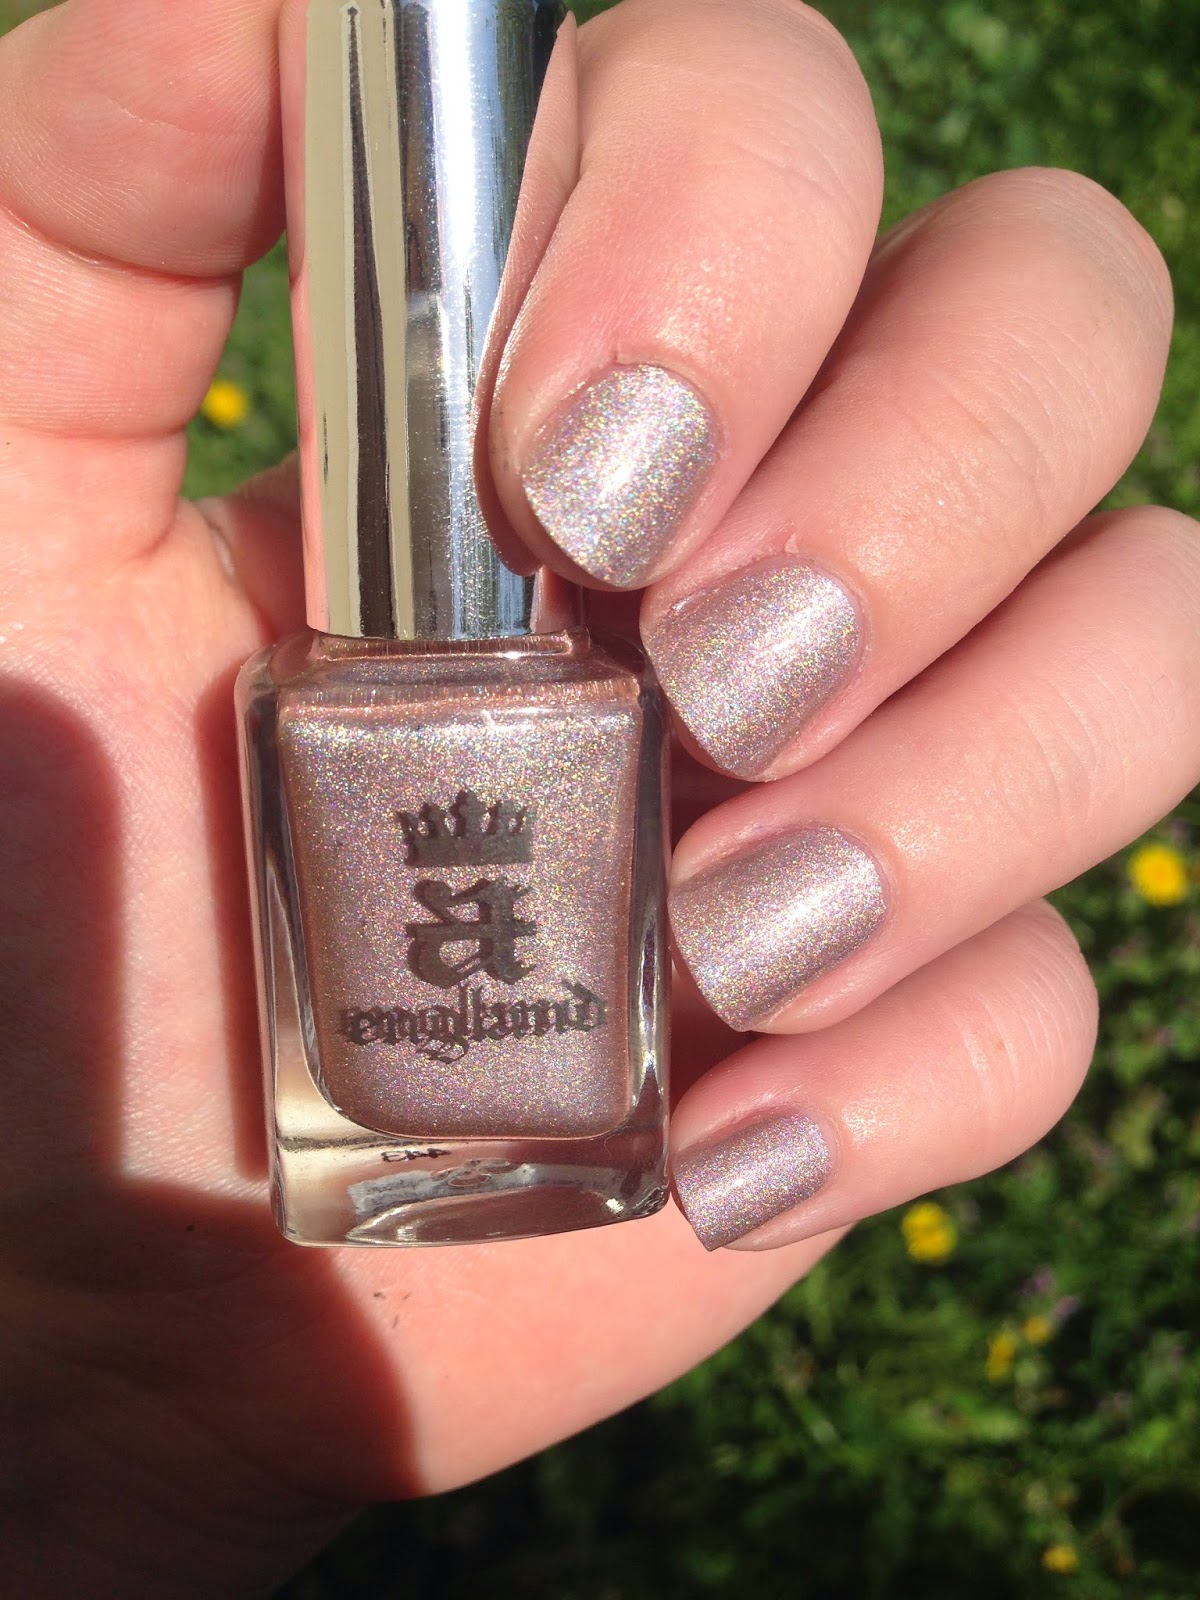 Swatch du vernis Her rose Adagio de la collection Ballerina de chez A England